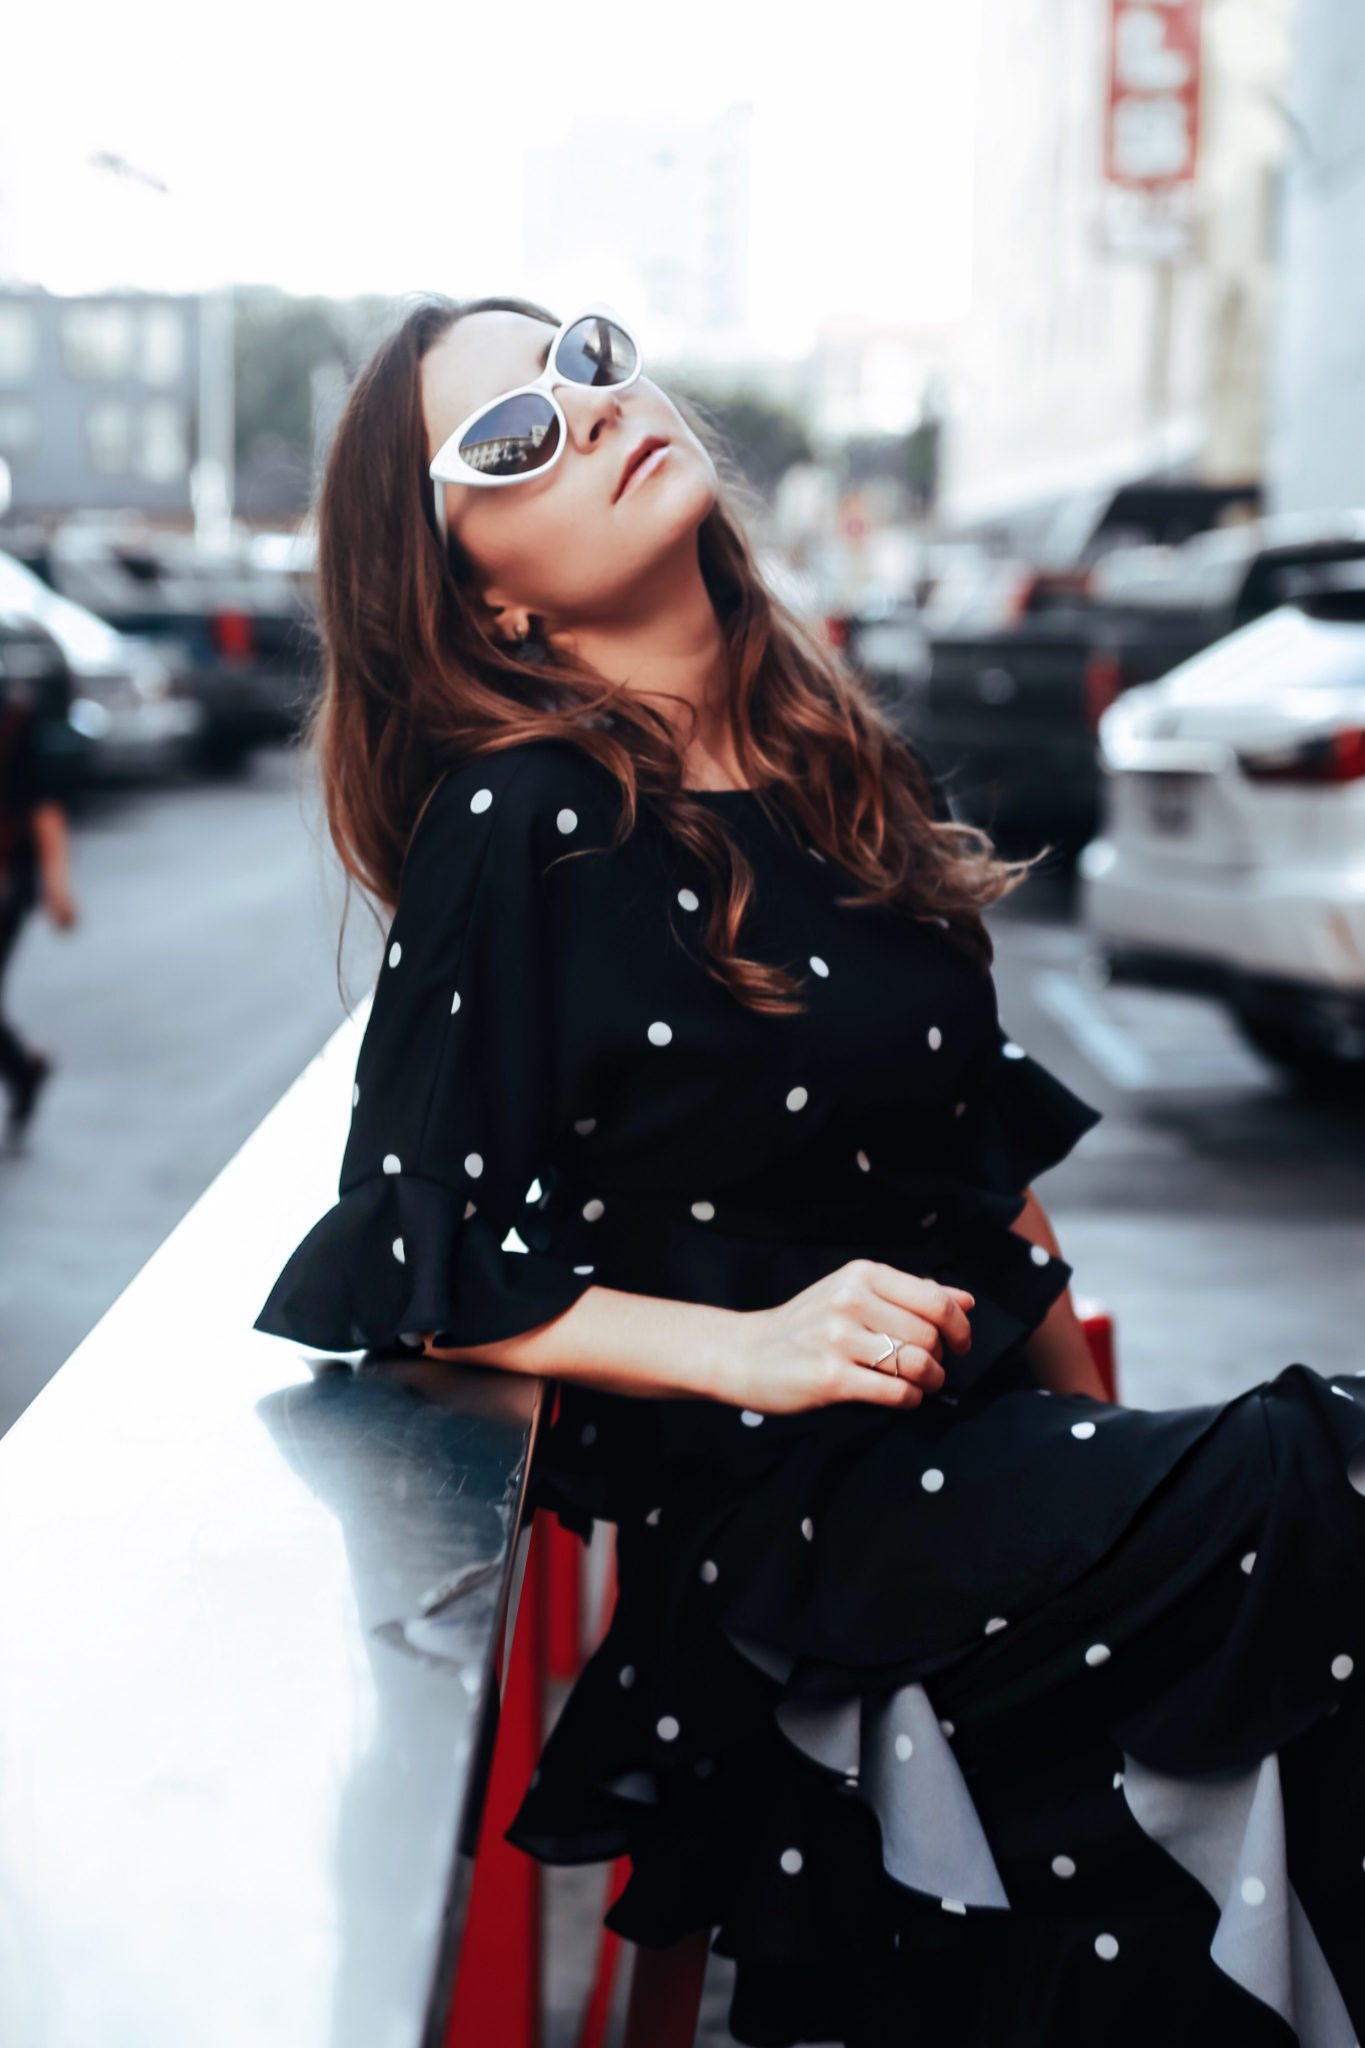 Evening dresses with Fame and Partners, A LA brand specialized in wedding party dresses. Julia Comil, French Fashion blogger in Los Angeles features the black and white polka dots Marisa dress from Fame and Partners - shot in Downtown Los Angeles